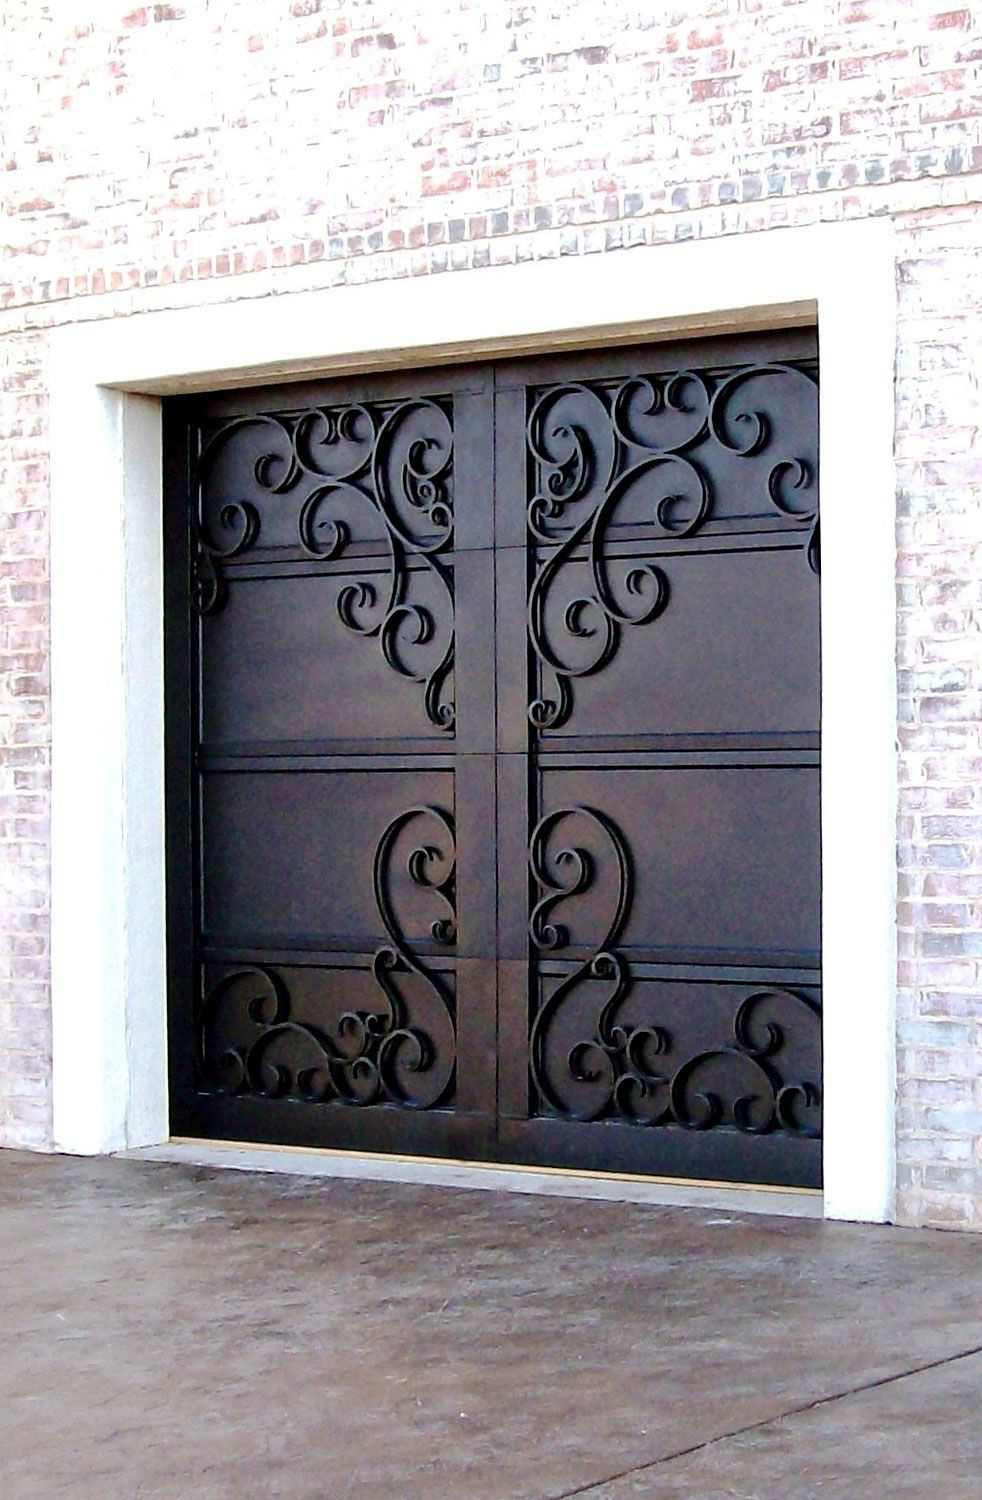 Cantera Doors Provides Hand Forged Custom Made Iron Staircase Balcony Railings For Your Home In Texas Fl Garage Doors Garage Door Design Garage Door Decor